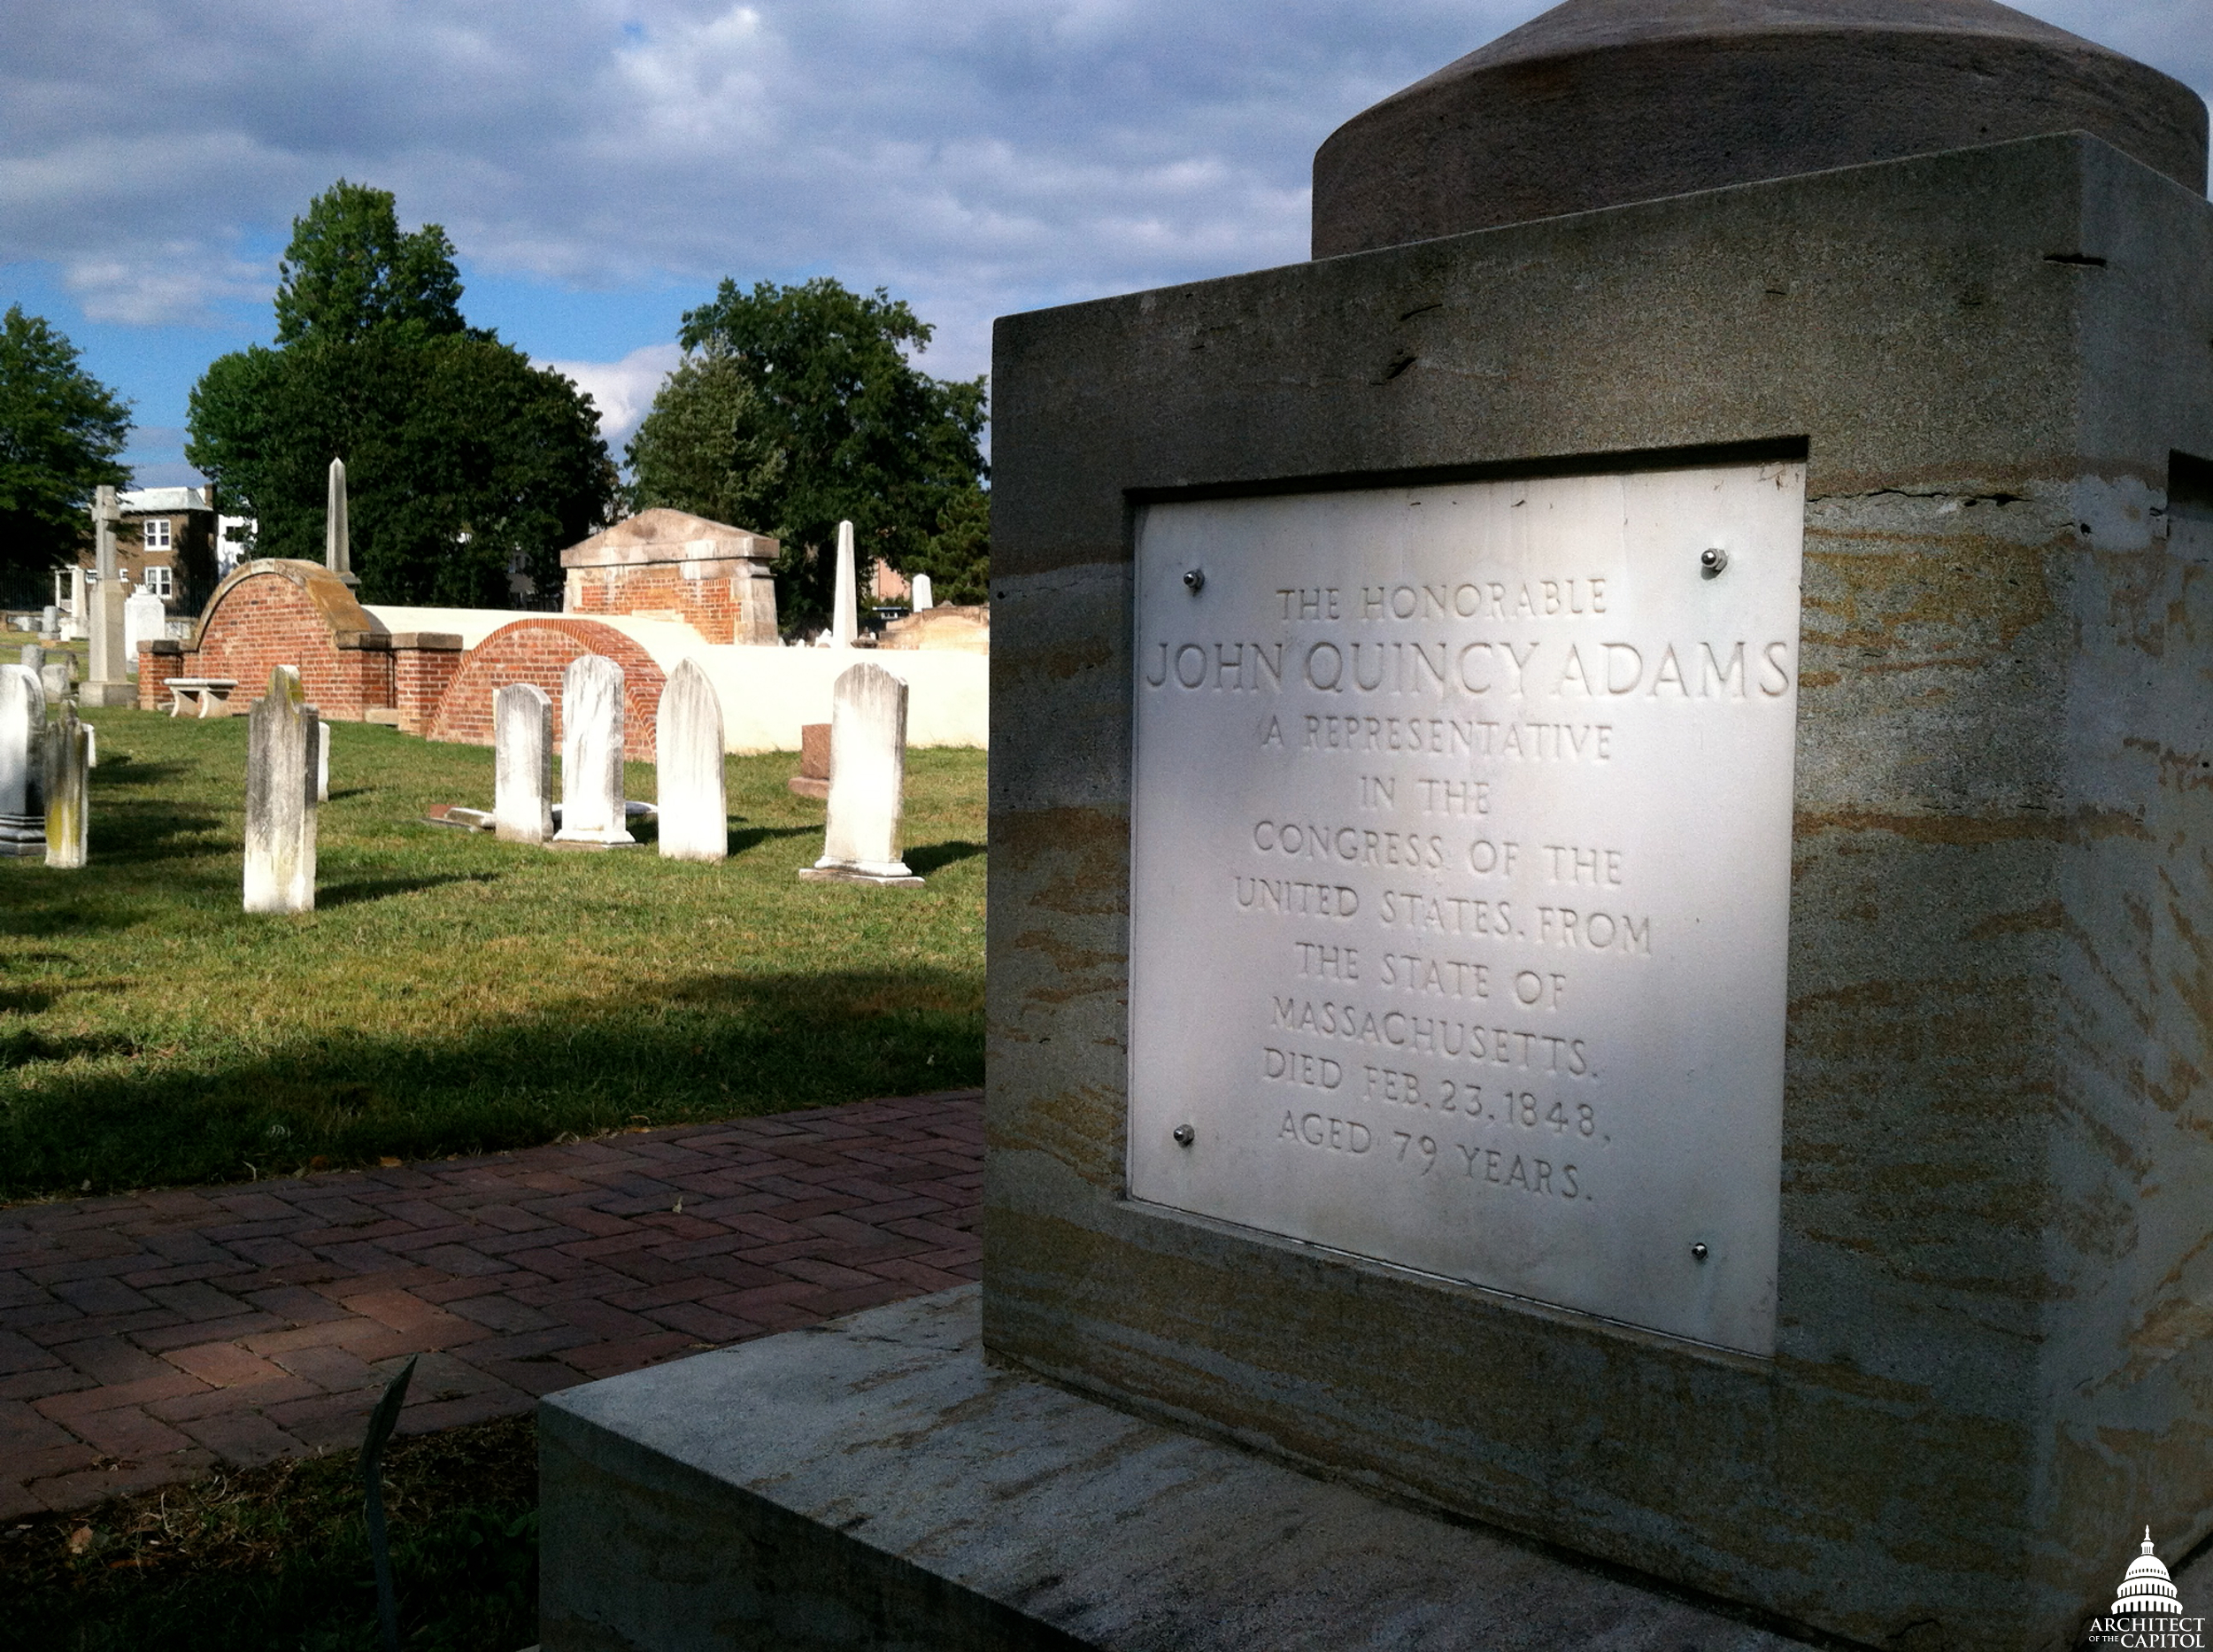 [ Photo of cenotaph honoring John Quincy Adams at the Congressional Cemetery. ]